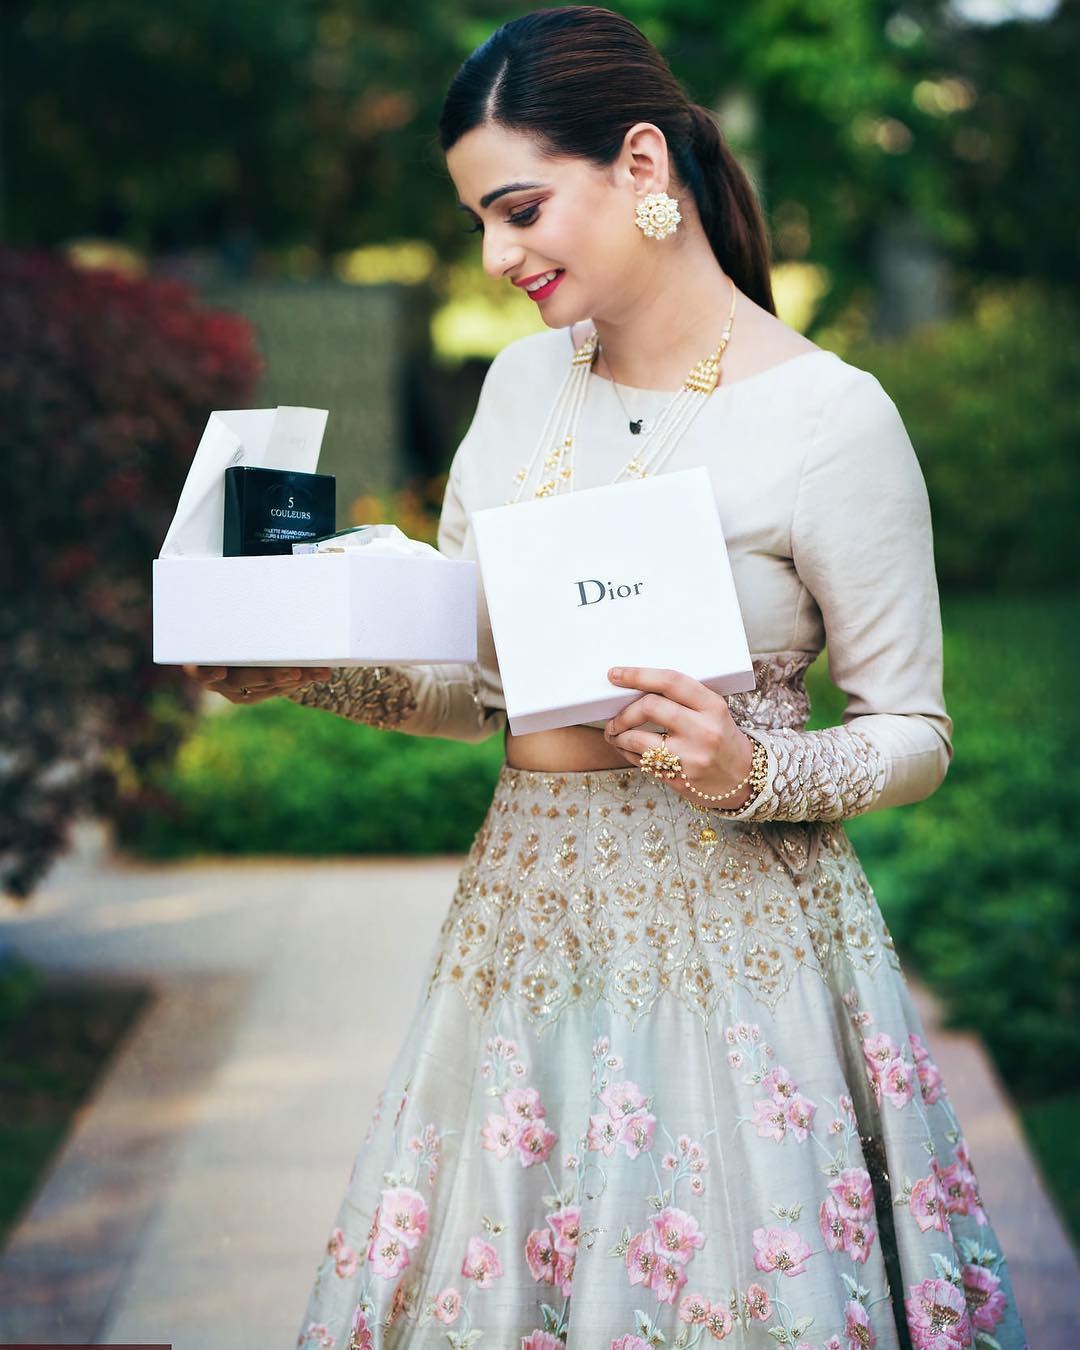 Buy Wedding Gift: Wedding Gifts That Couples Will Always Find Wow